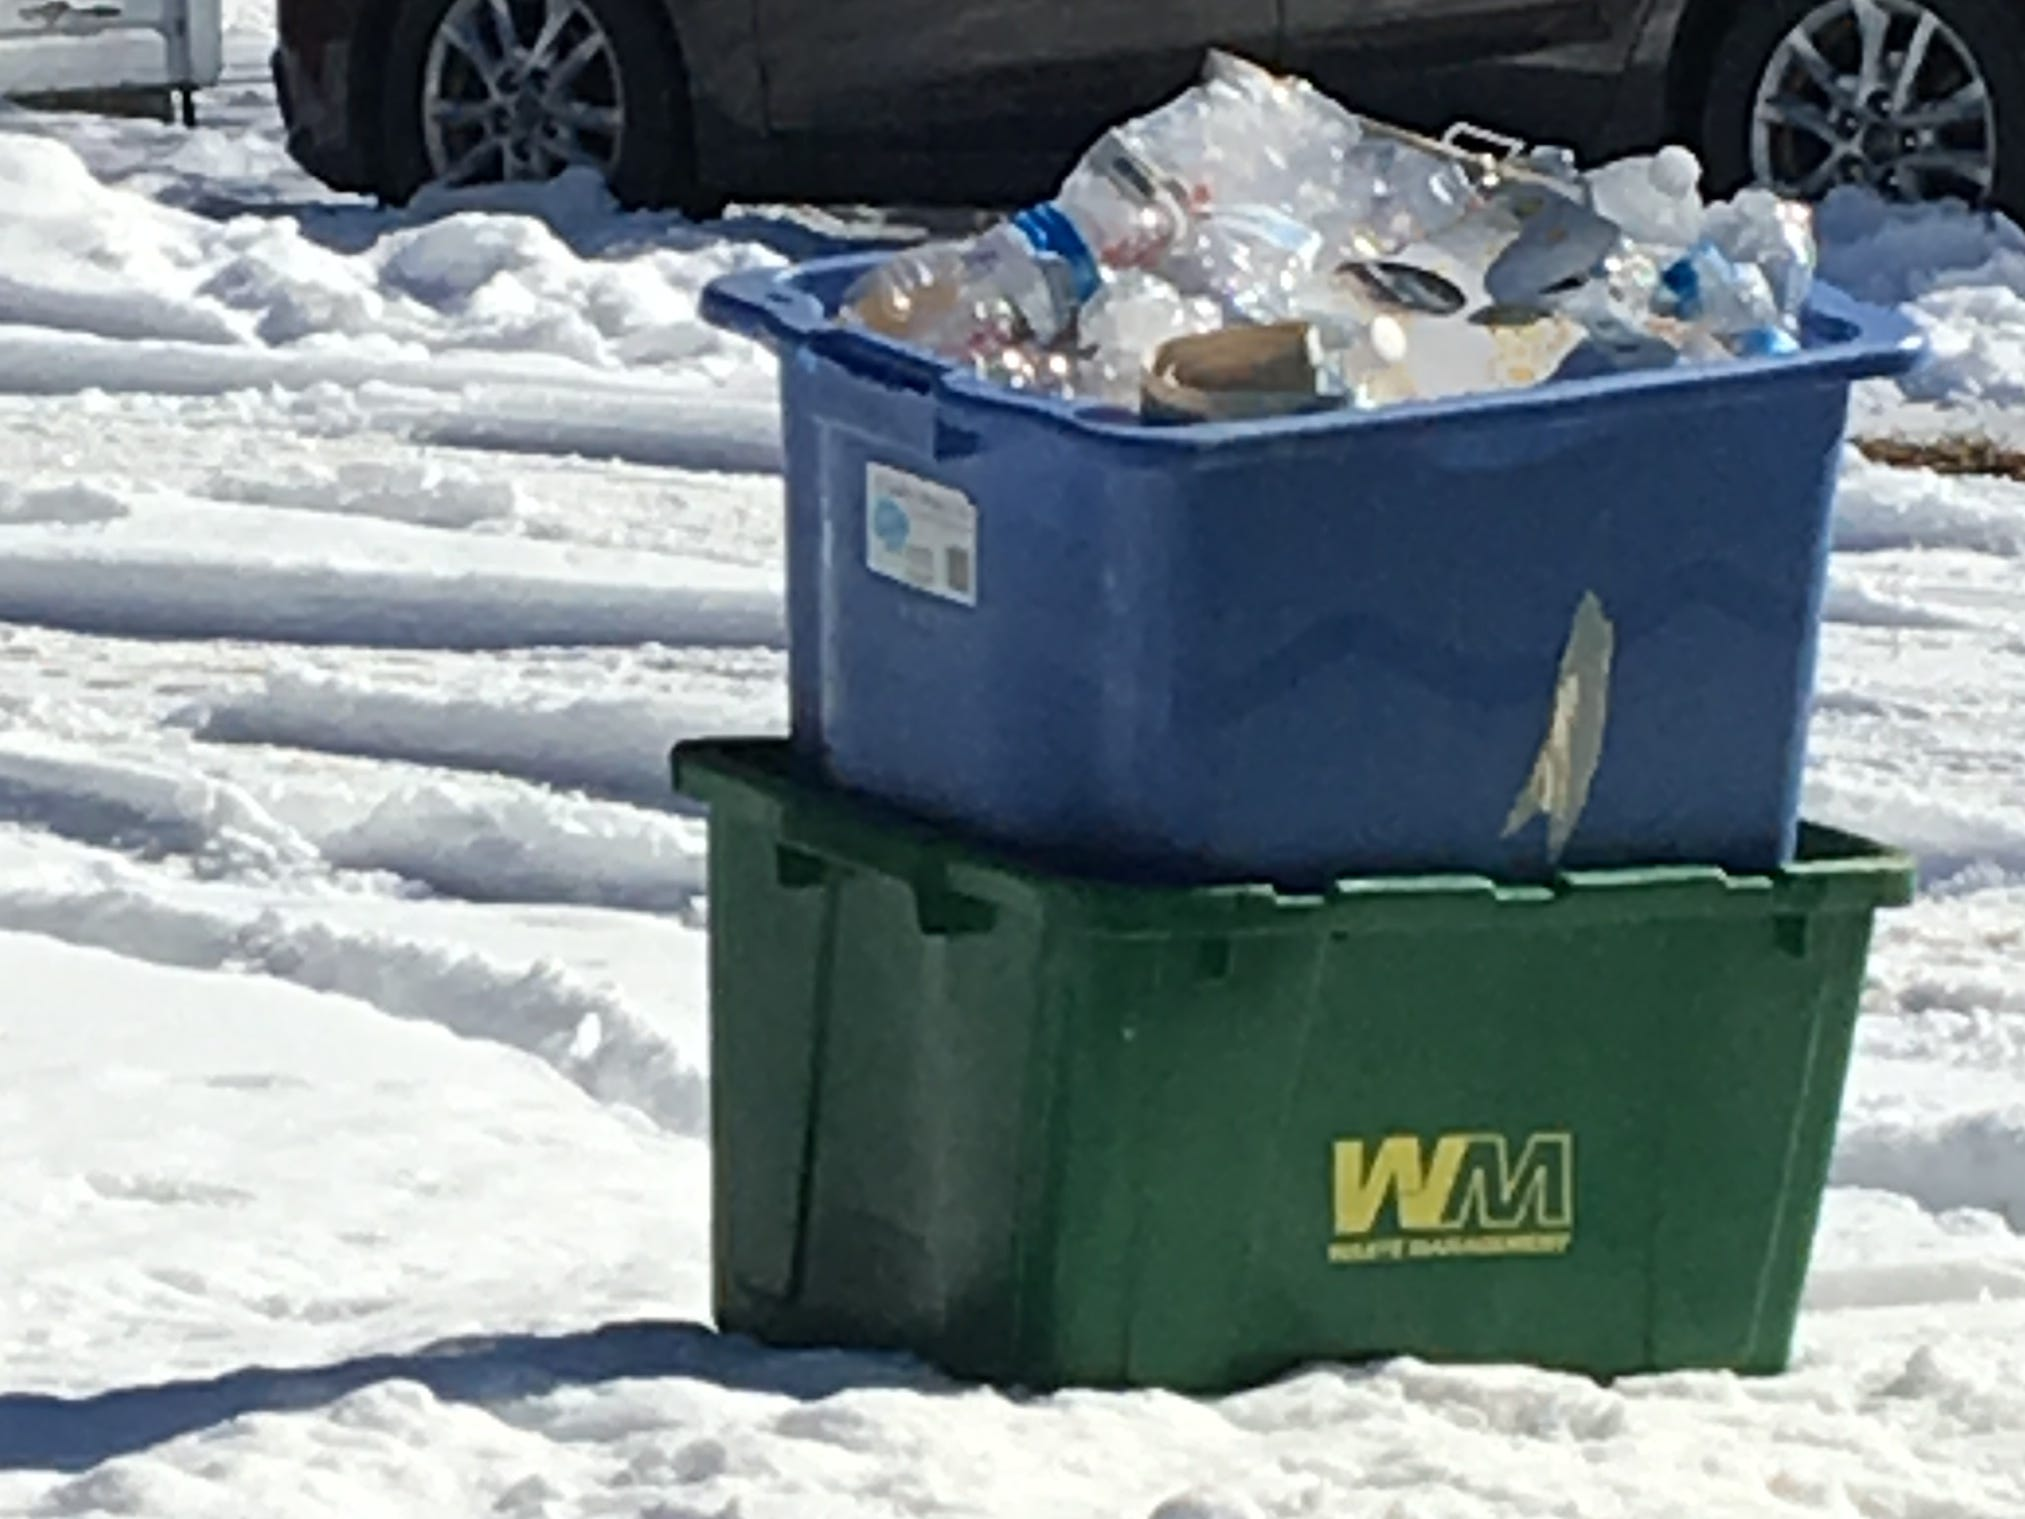 With recycling market in flux, experts say recycle more and keep it clean